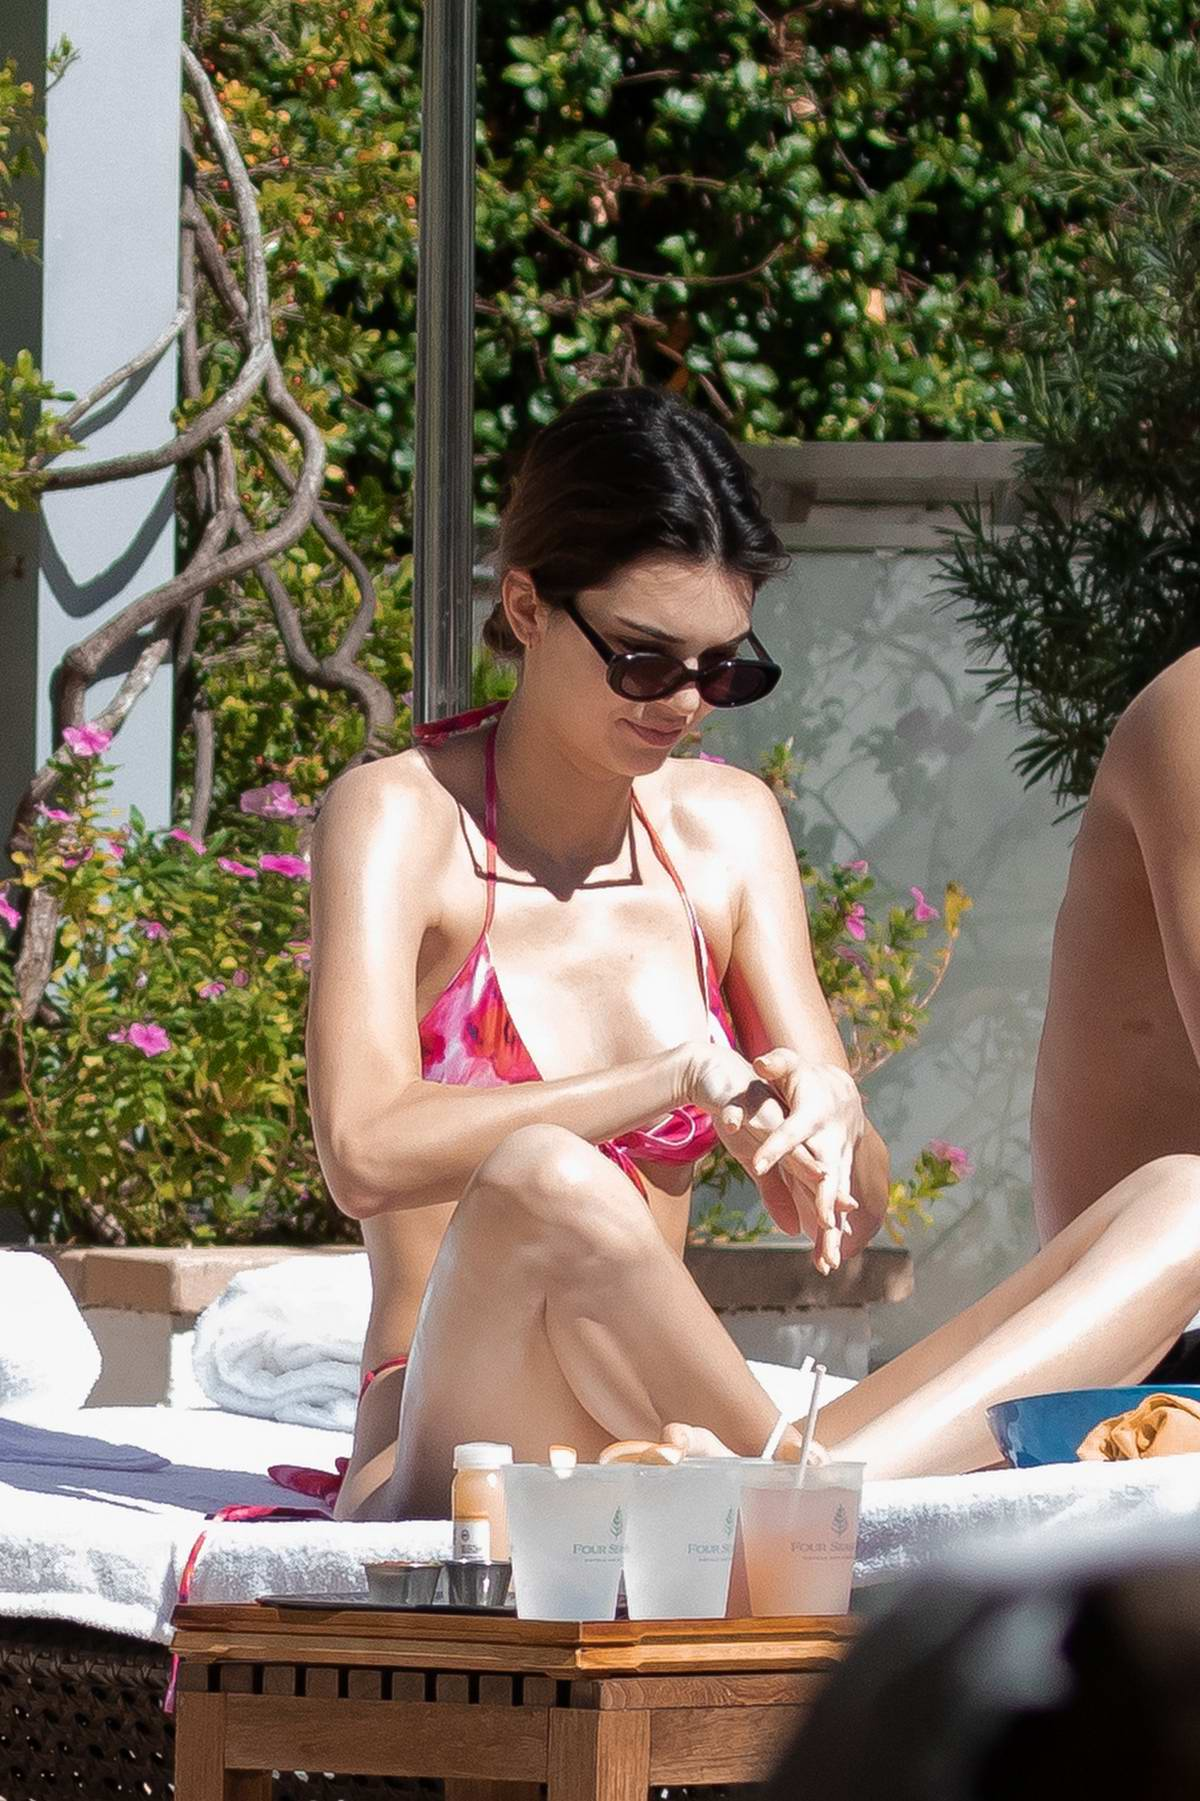 Kendall Jenner seen wearing a pink bikini while relaxing by the pool with Ben Simmons in Miami, Florida